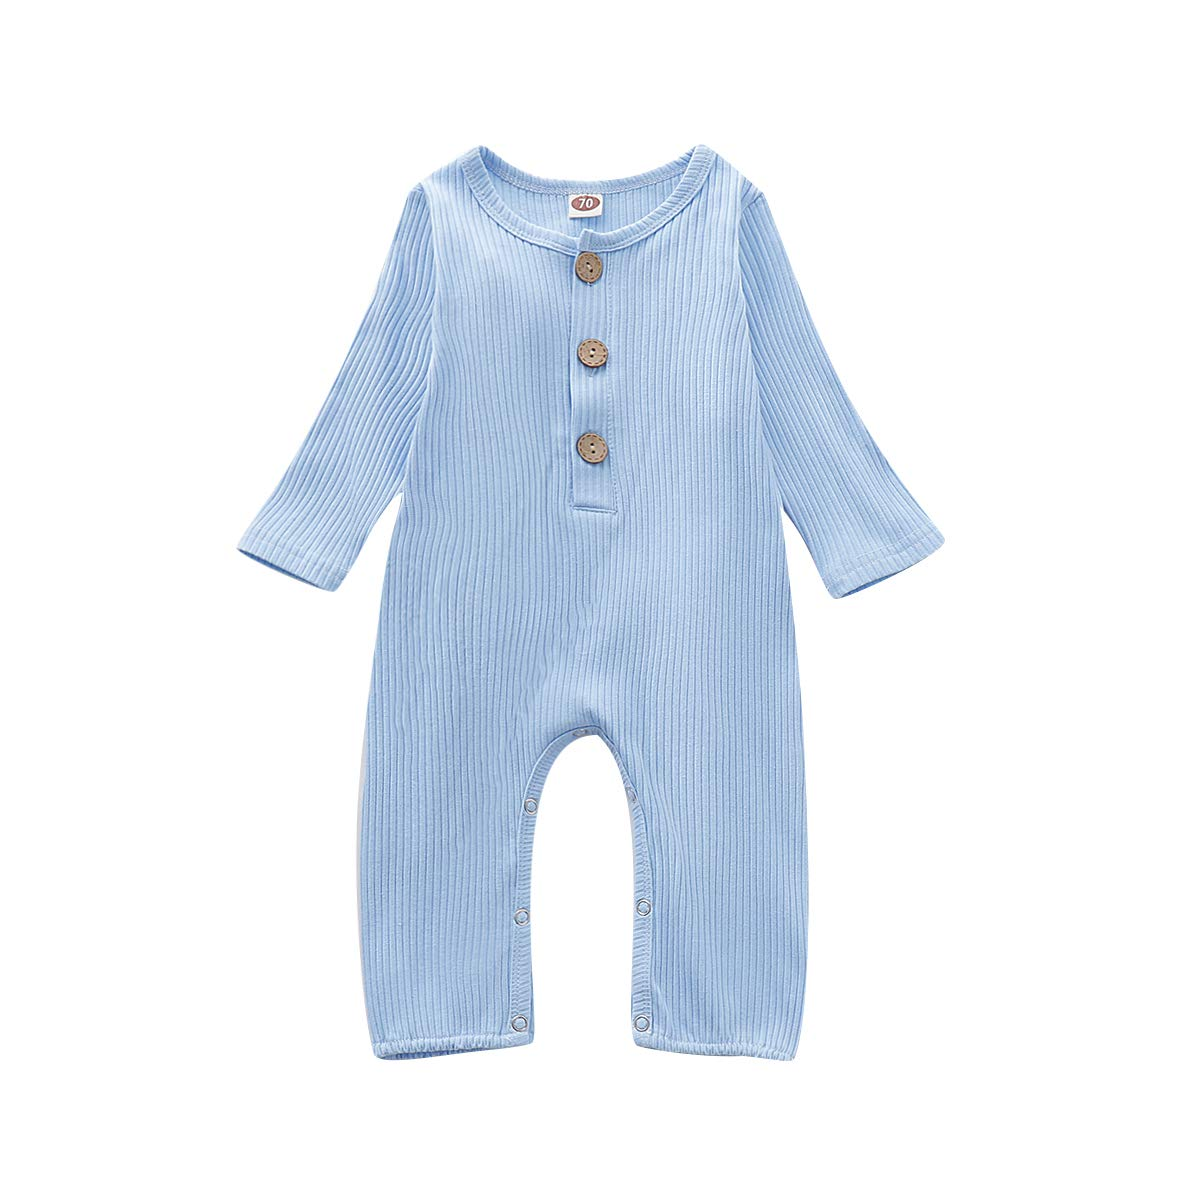 OPAWO Newborn Baby Romper Jumpsuit Long Sleeve Boys Girls Solid Color One Piece Outfits with Button